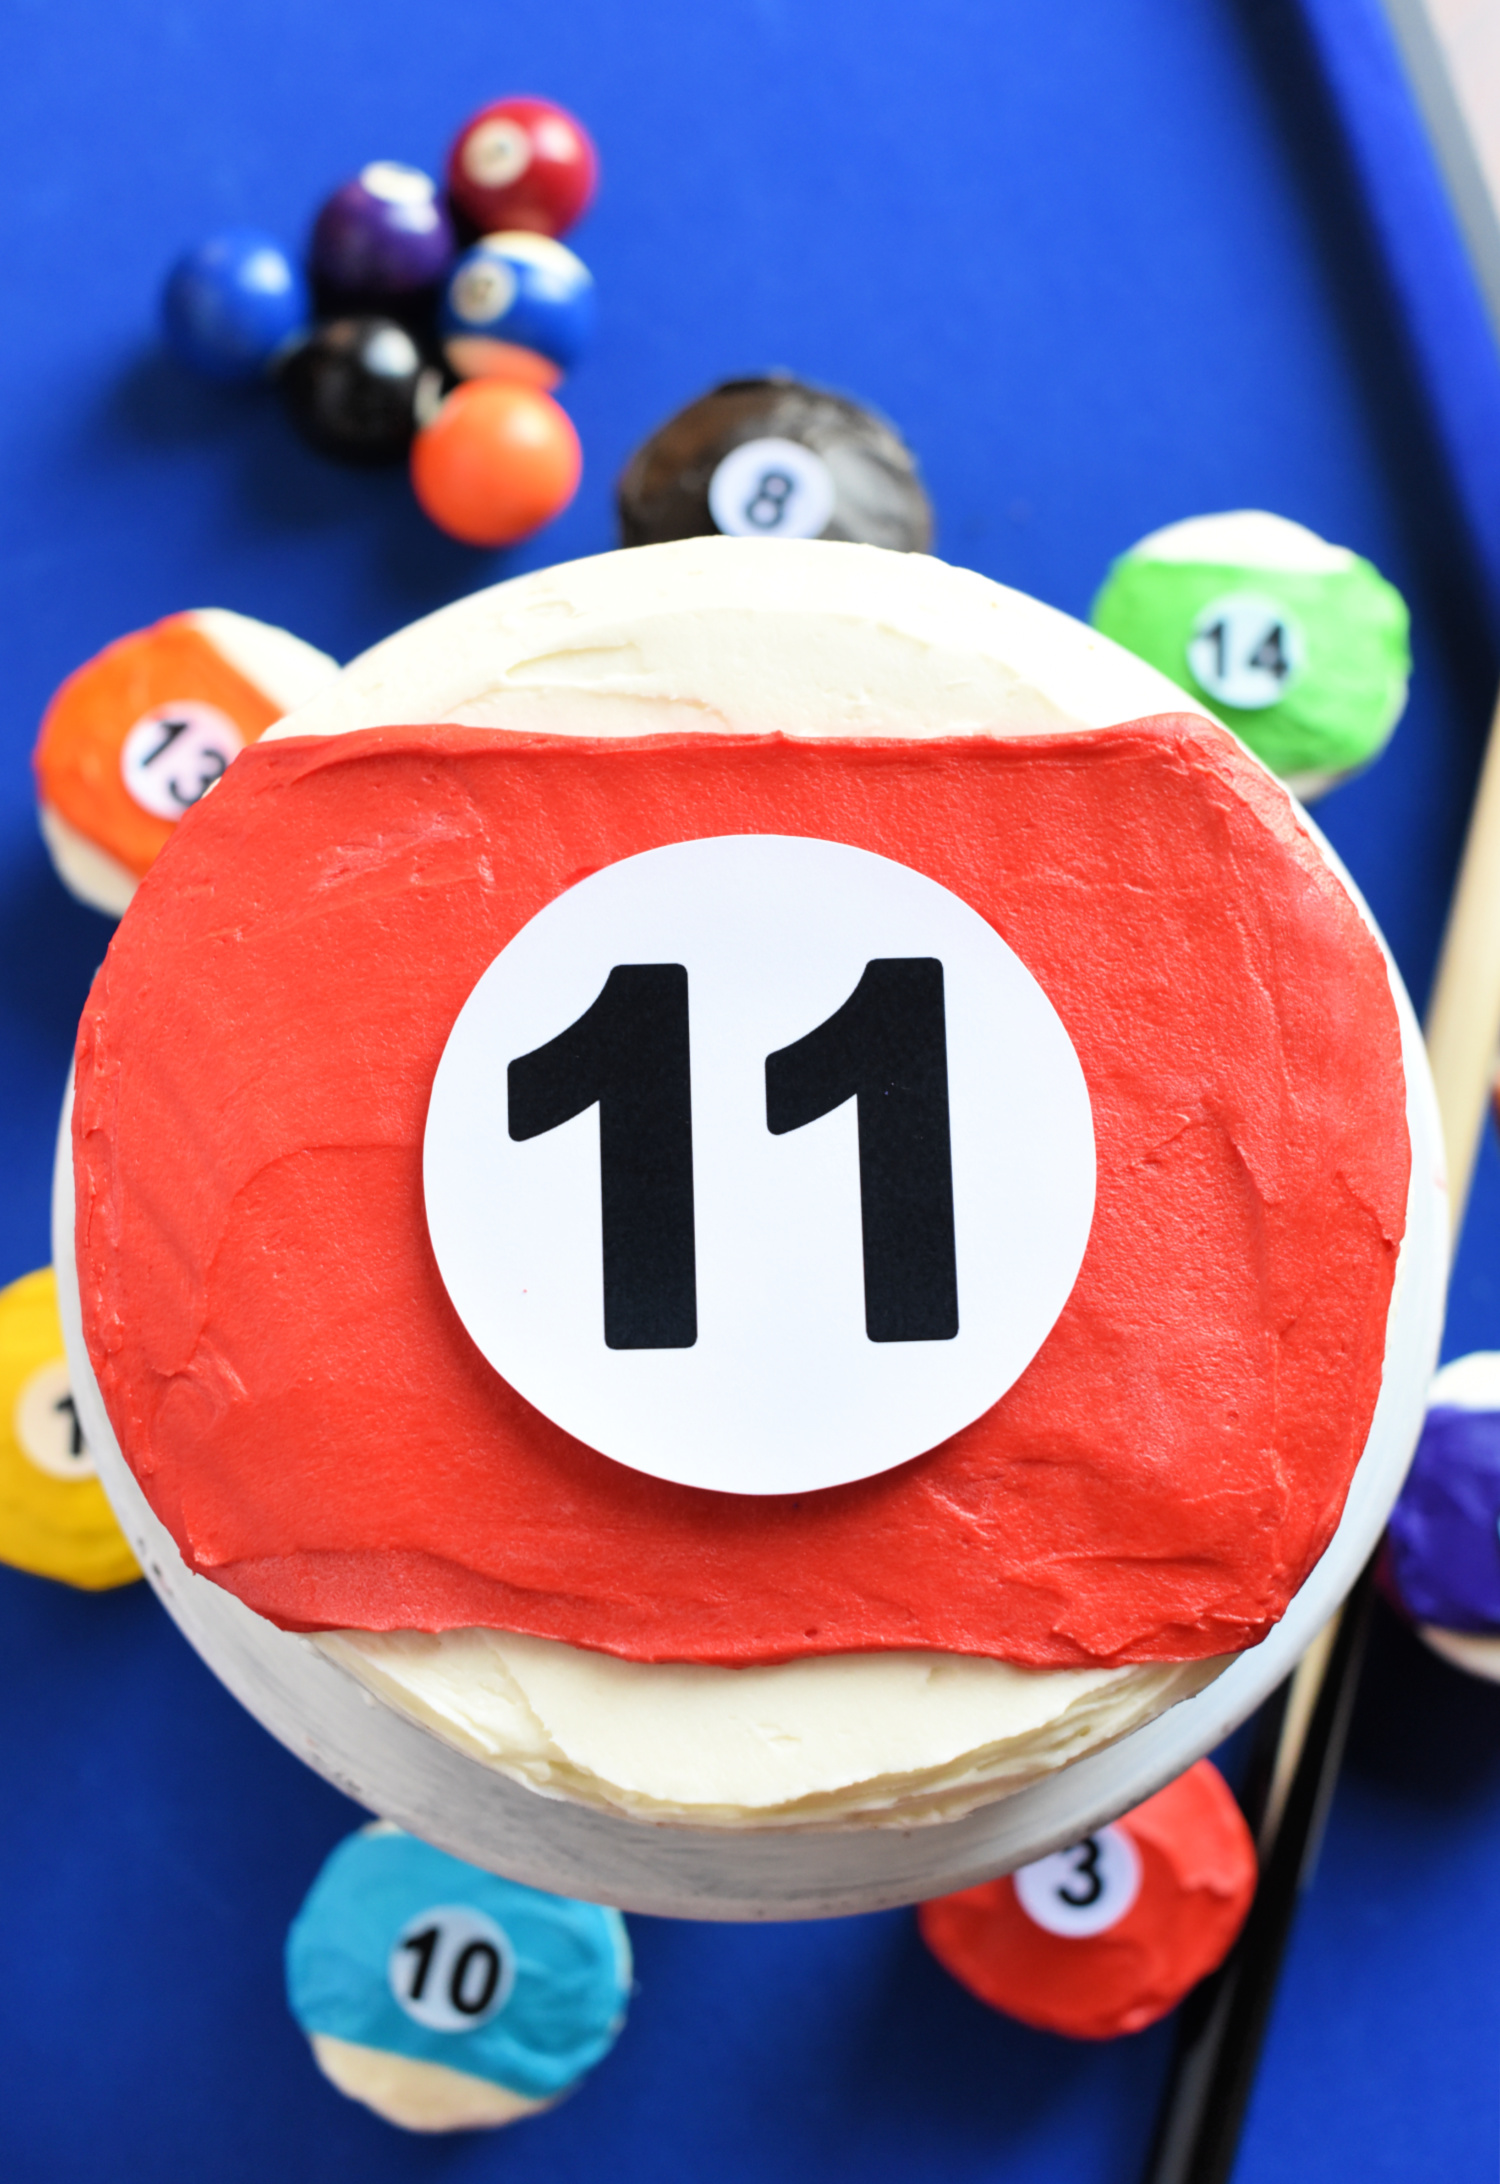 Fun Pool Table Cake Idea-If you've got a little one that loves to play billiards, this fun pool ball cake is perfect. Make the main cake the number of the age they are turning and then cupcakes of all the other pool balls. Easy to make-you can do it! #cakes #cake #dessert #birthdaycake #billiards #birthdayparty